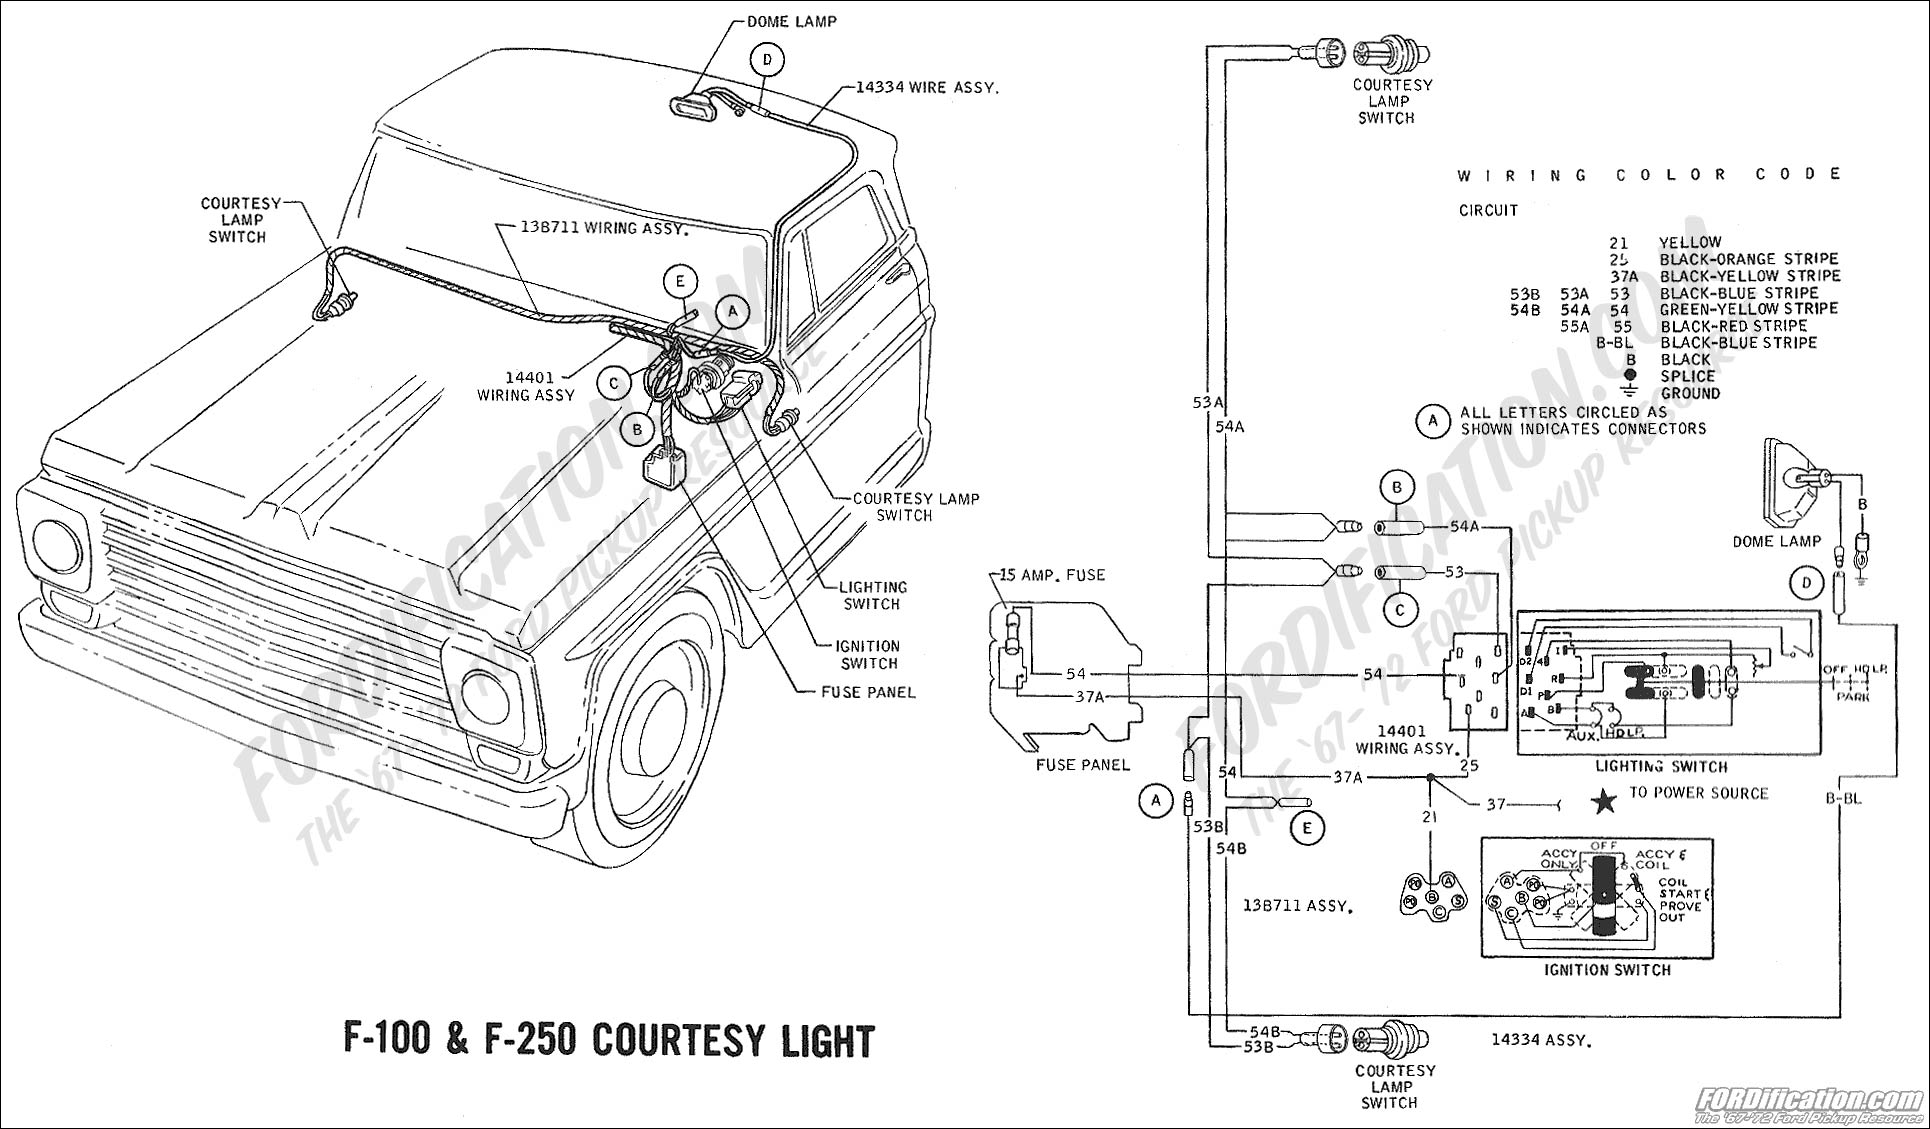 2012 ford mustang courtesy light wiring 70 chevelle courtesy light wiring diagram #11